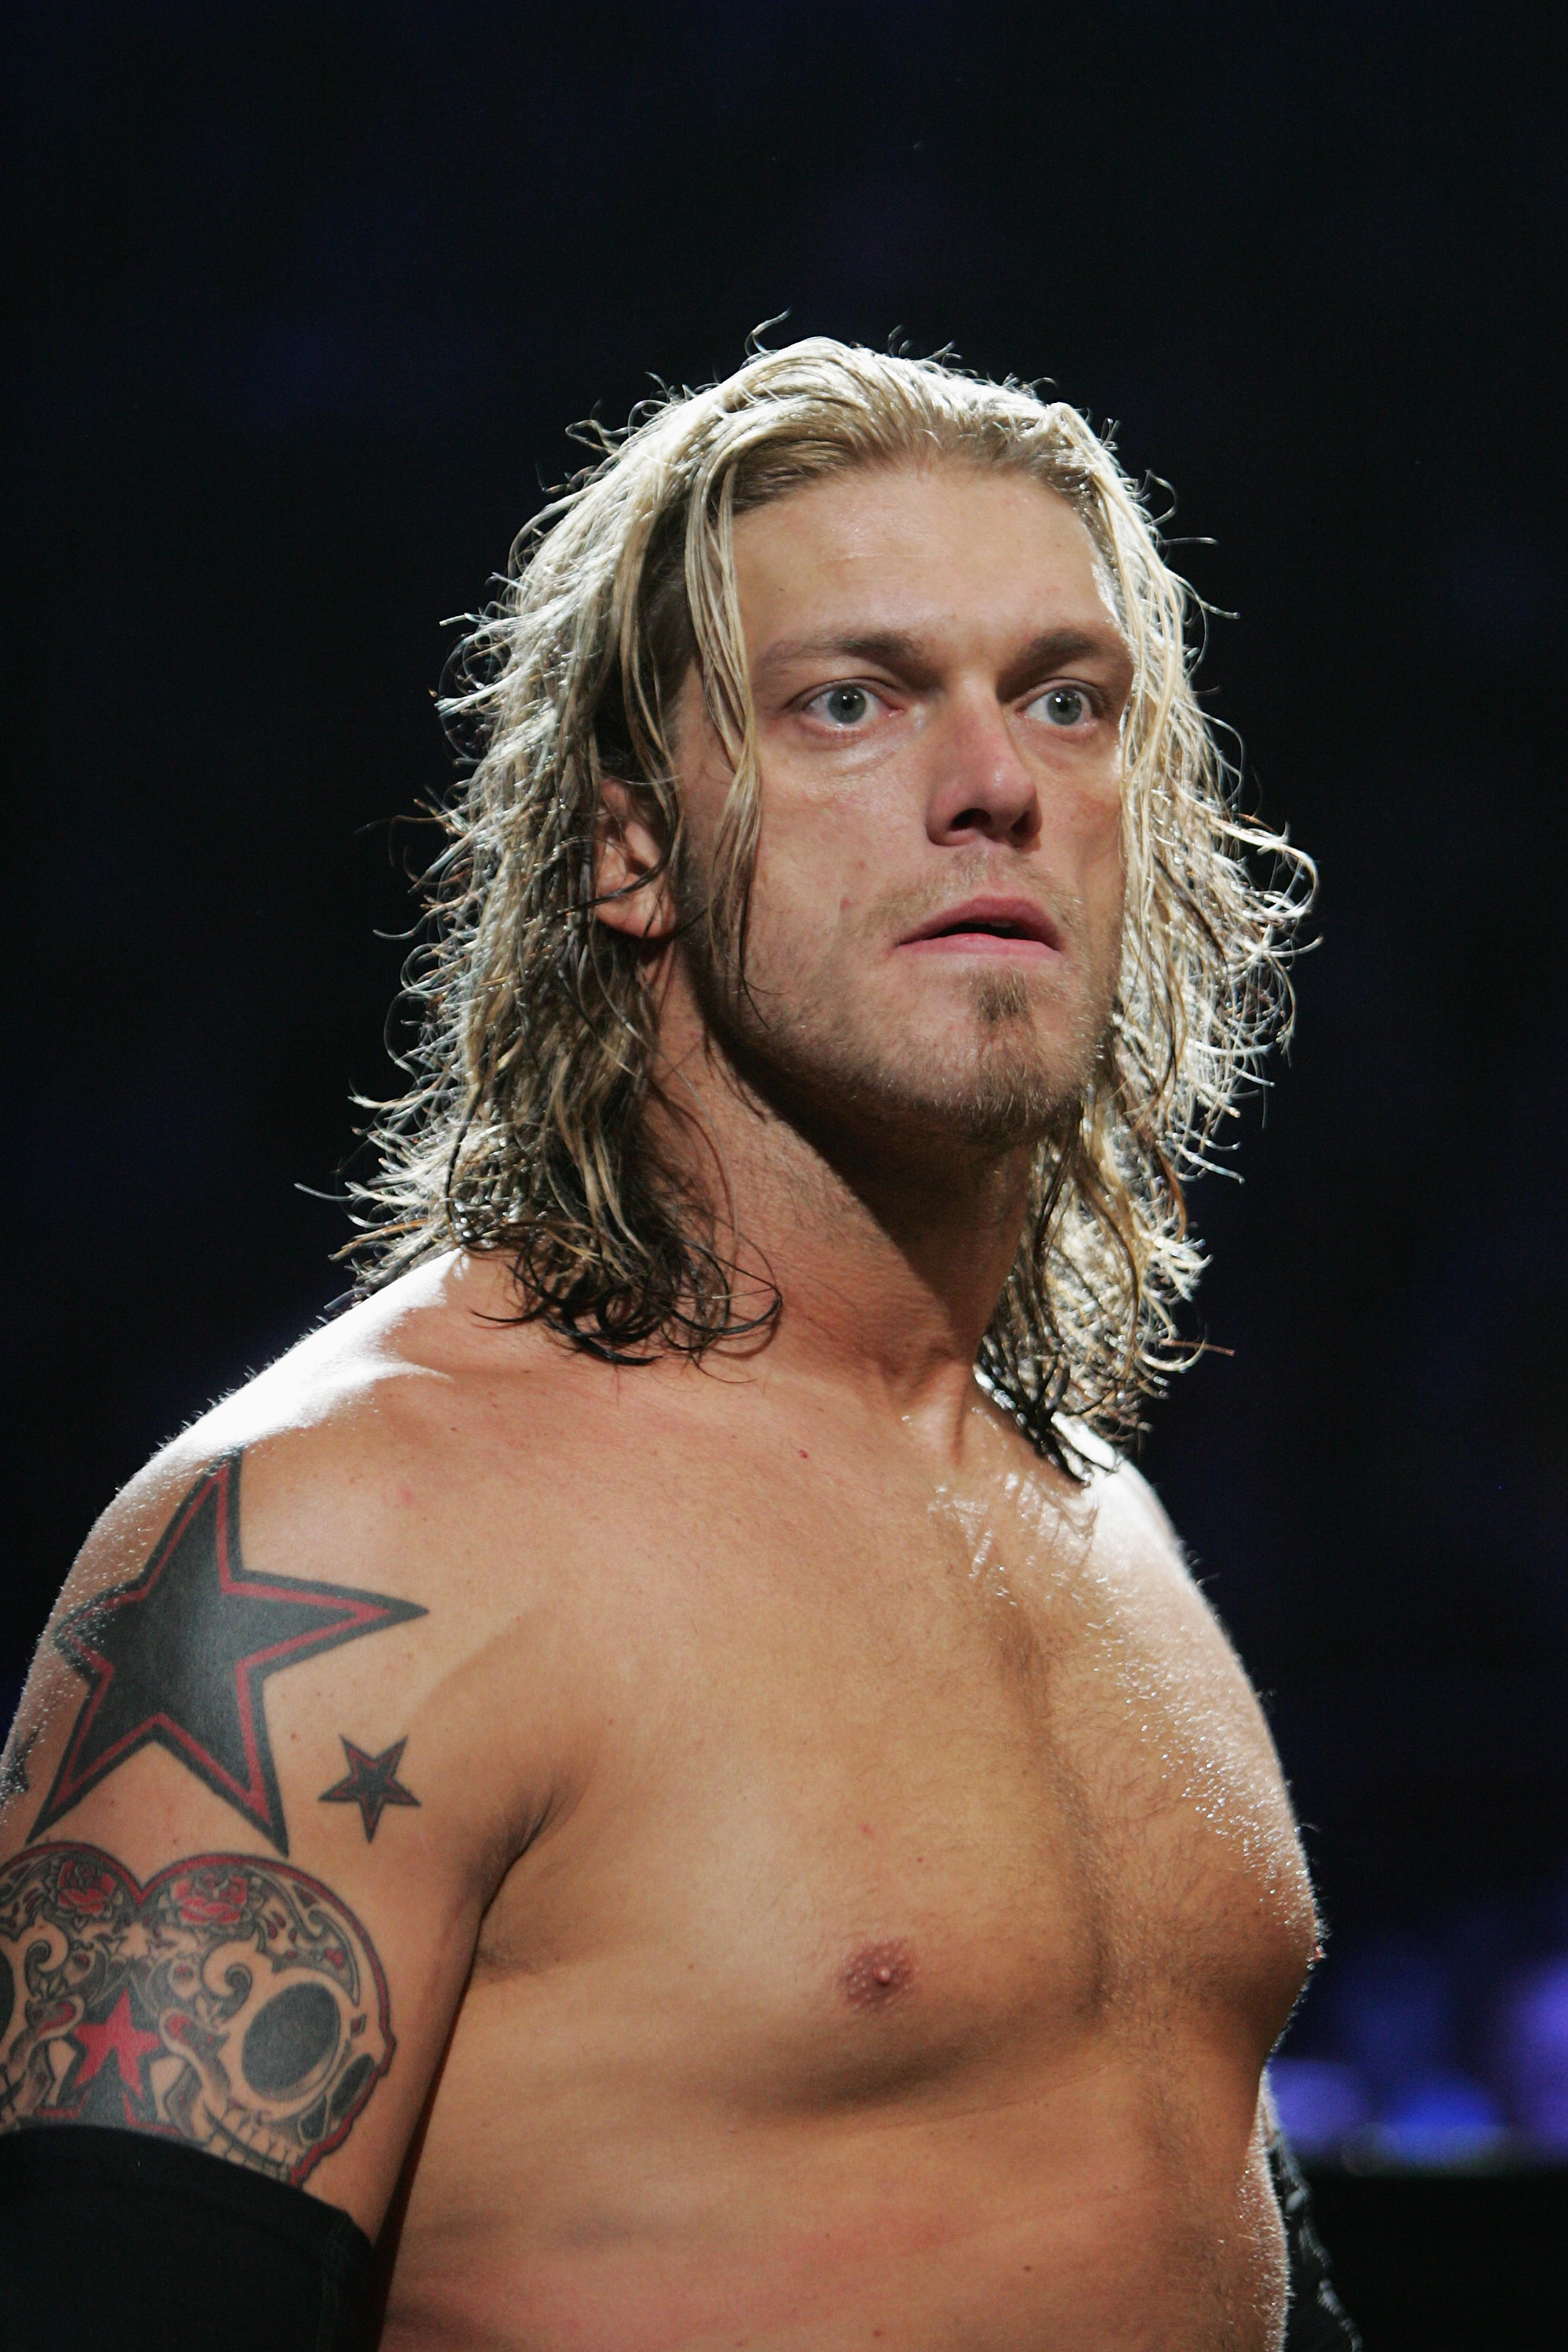 Edge will win the title thanks to help from Kelly Kelly